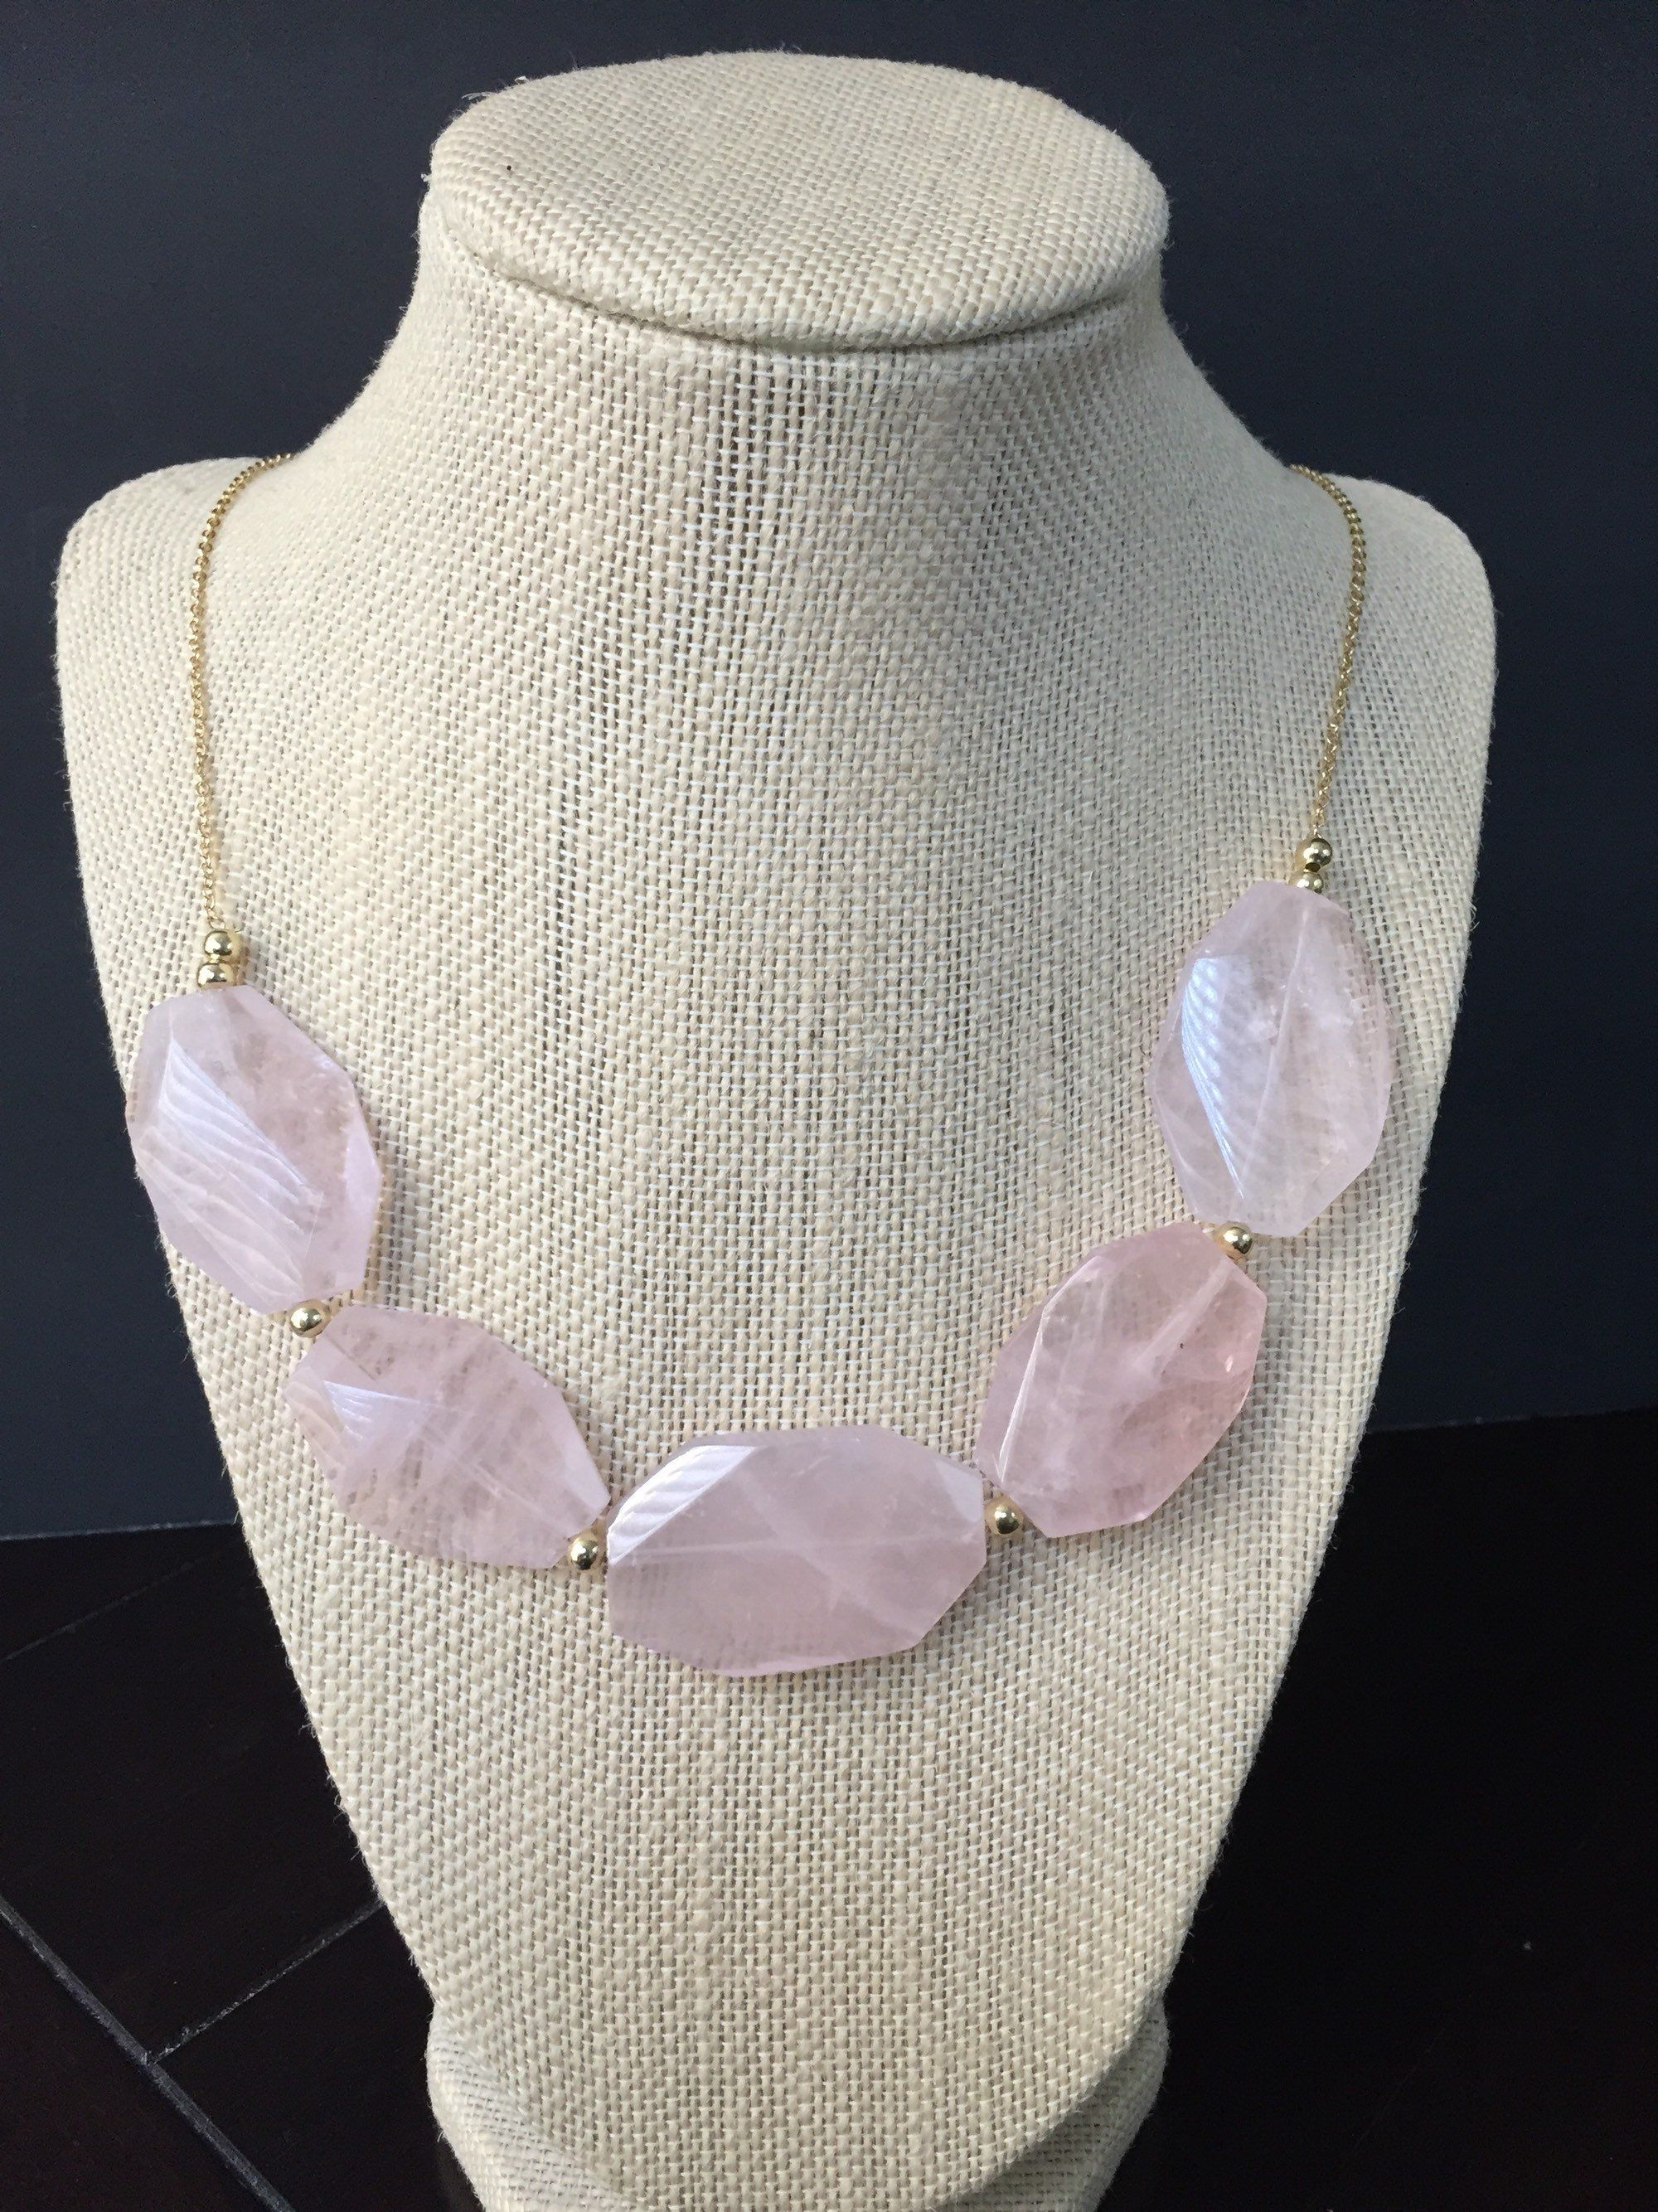 SALE!!! Rose quartz necklace, Healing crystal stone necklace, Unconditional love necklace, Fertility necklace, Wife birthday gift, Statement #quartznecklace